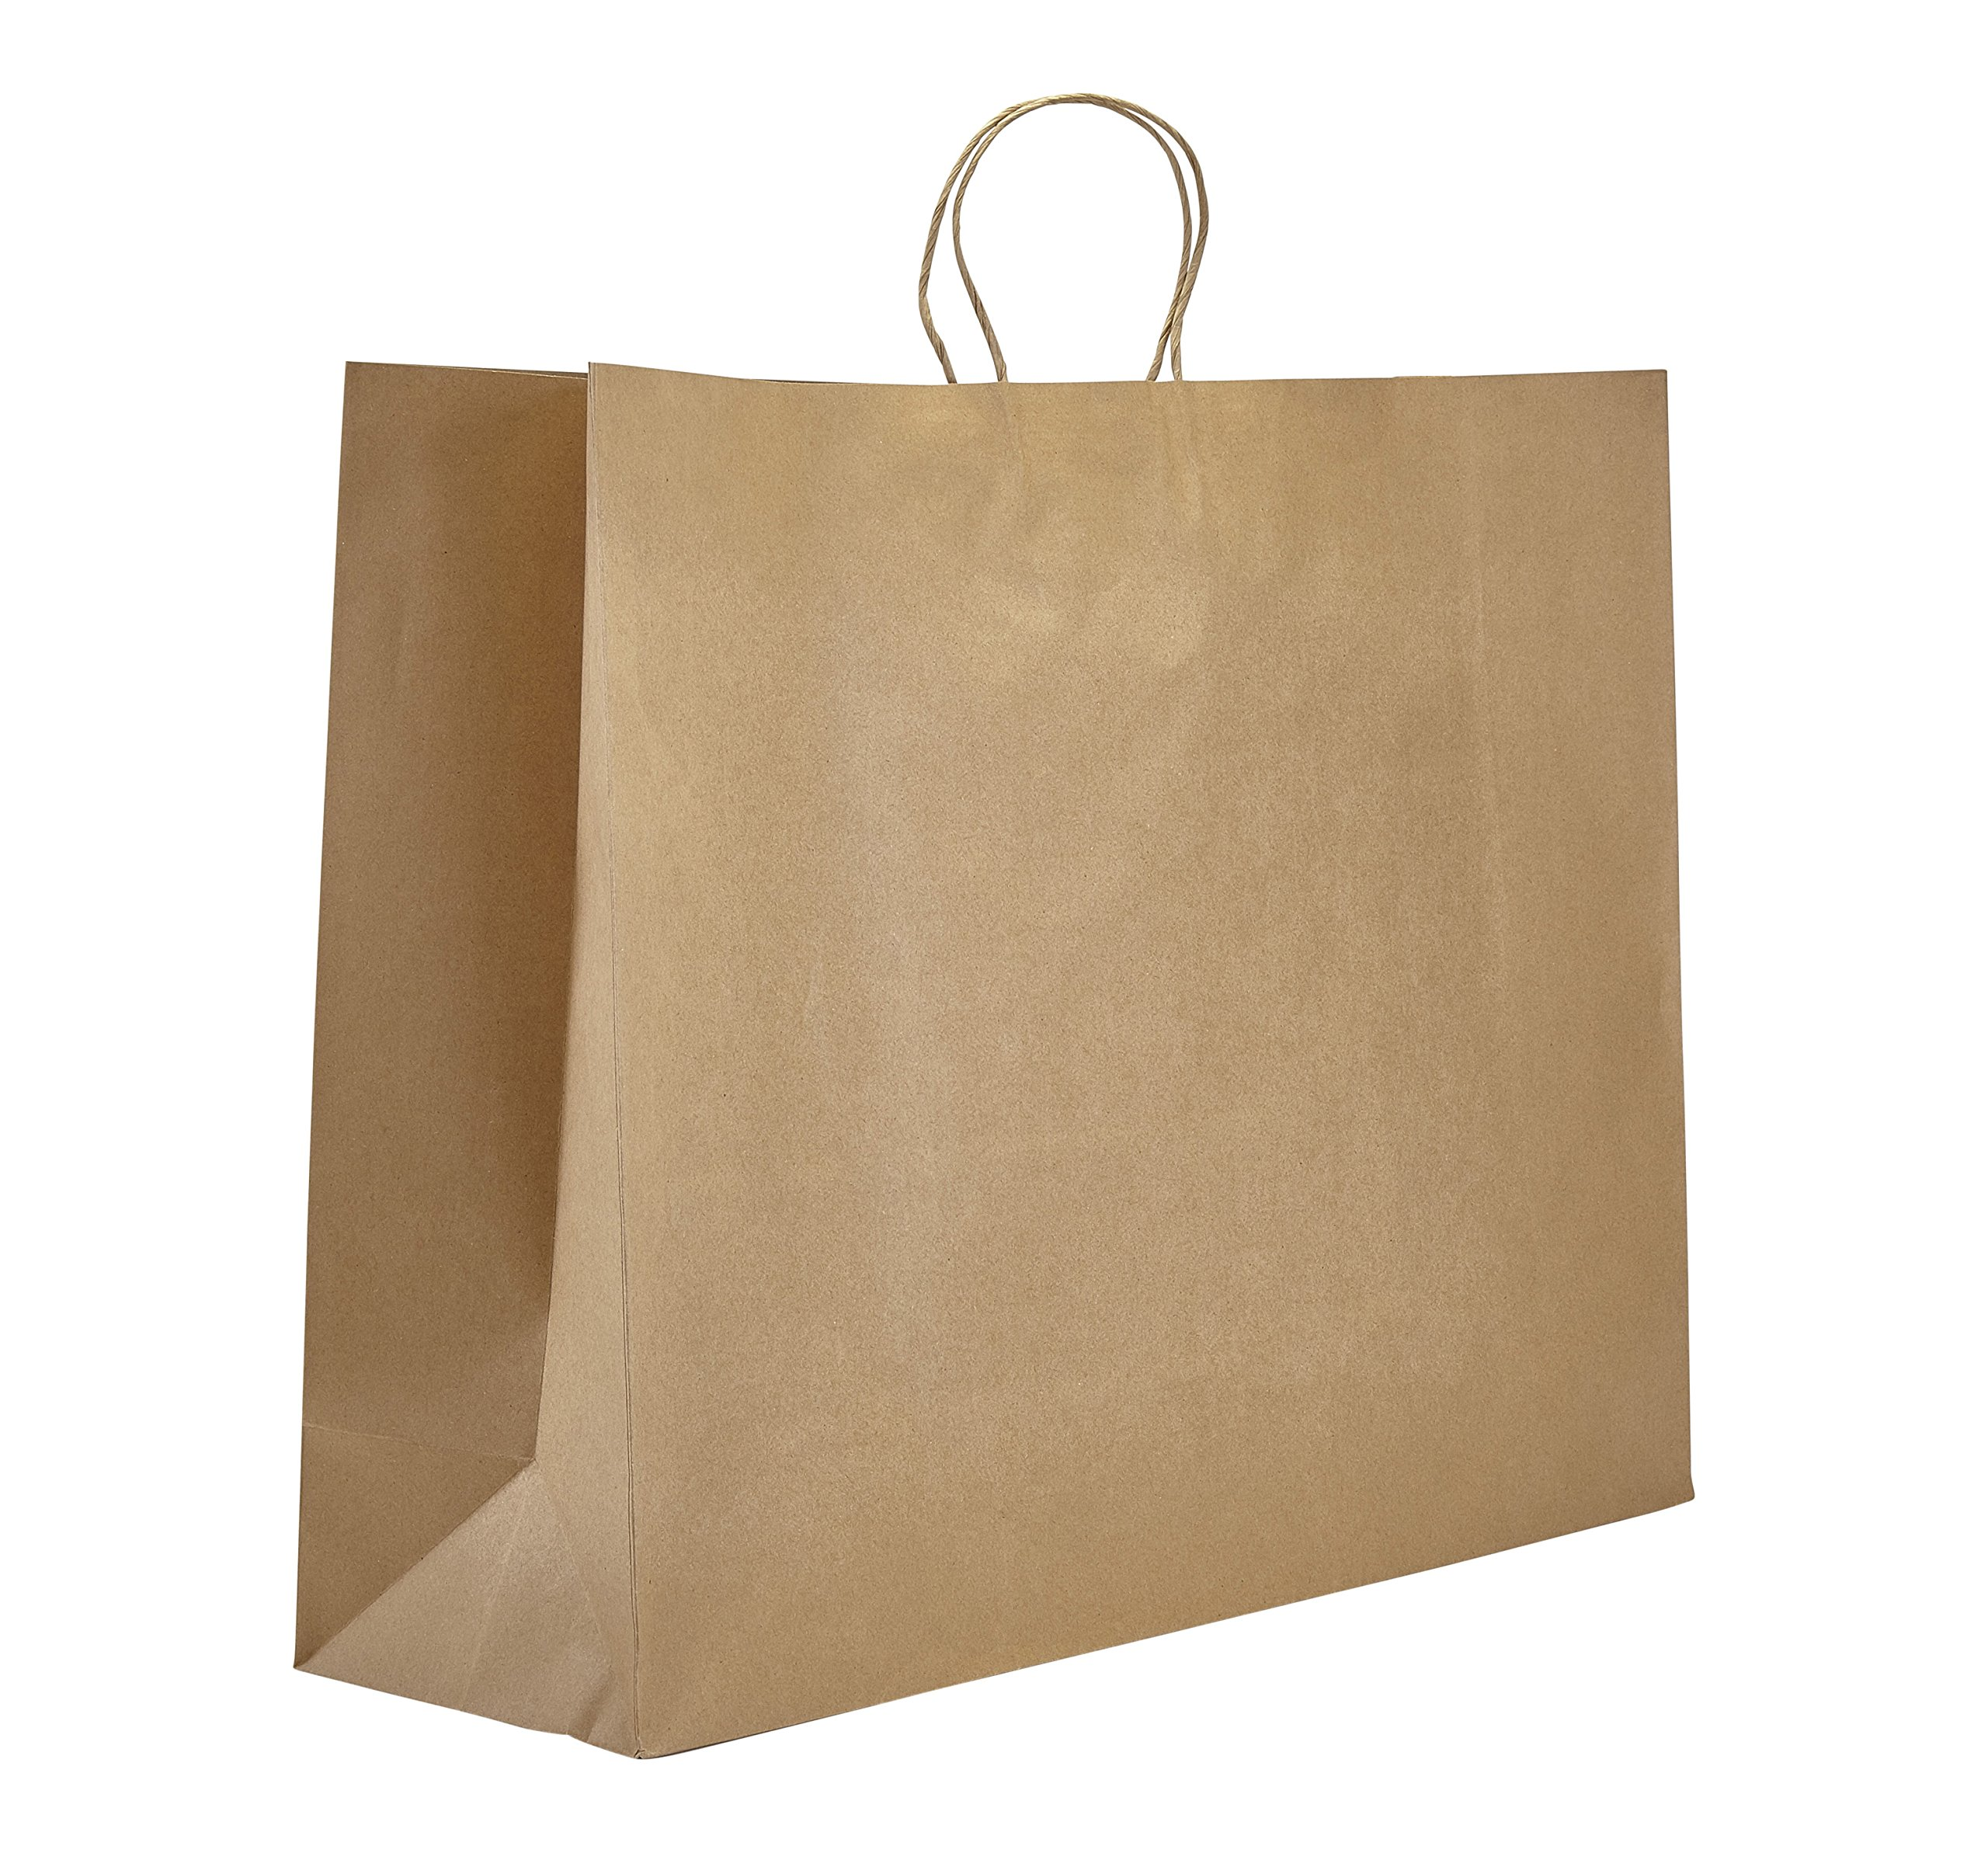 PTP - 24'' x 7.25'' x 18.75'' Natural Kraft Paper Gift Tote Bags - 125 count | Perfect for Birthdays, Weddings, Holidays and All Occassions |